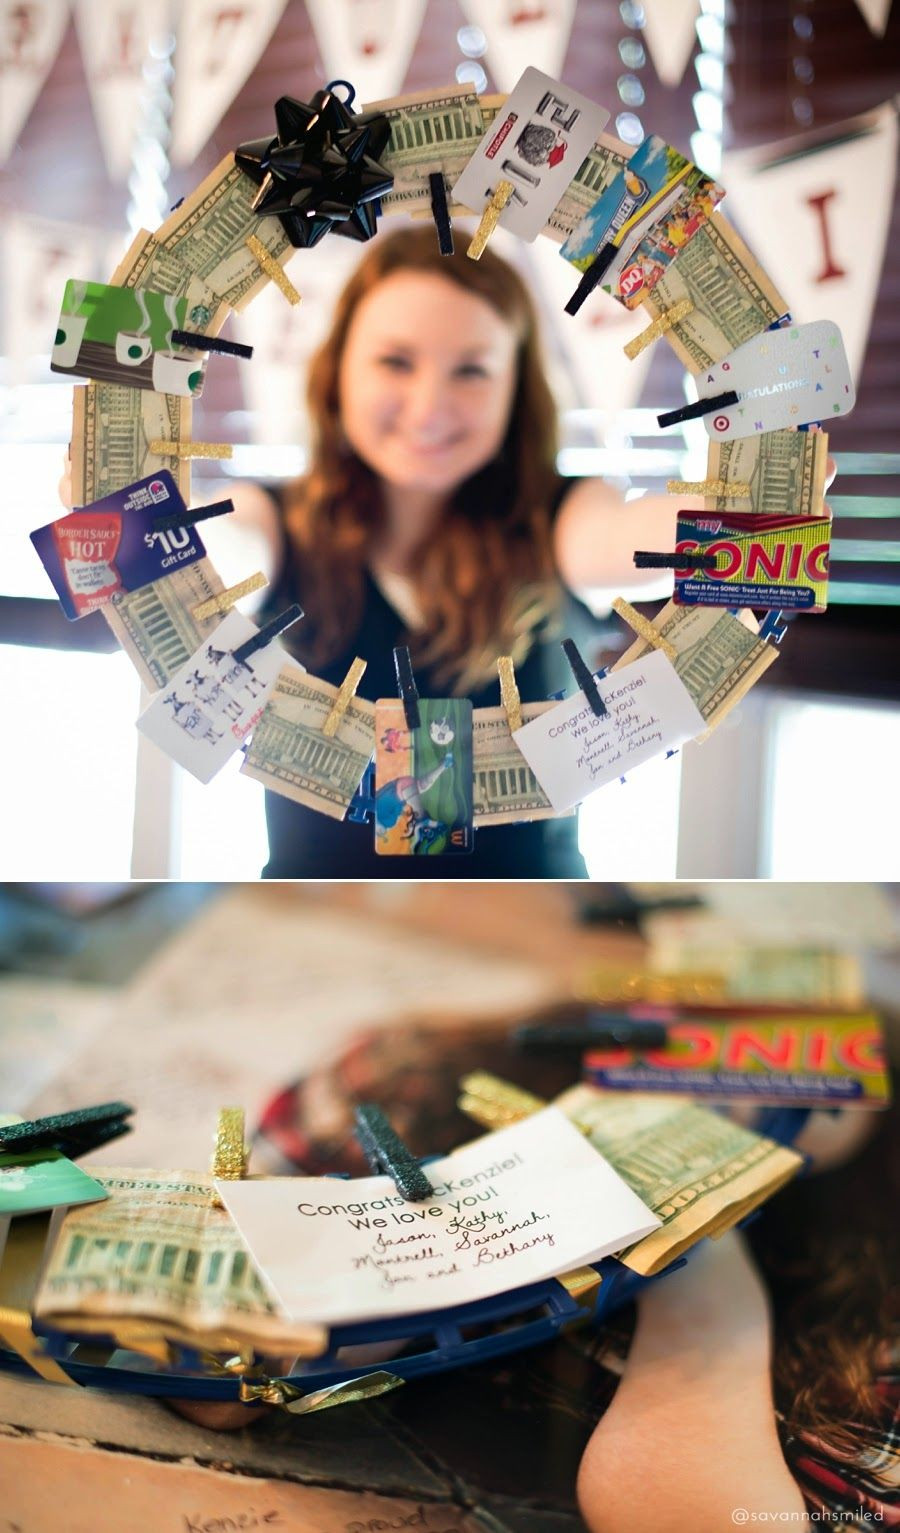 Best ideas about College Grad Gift Ideas . Save or Pin Graduation Gift Ideas Now.